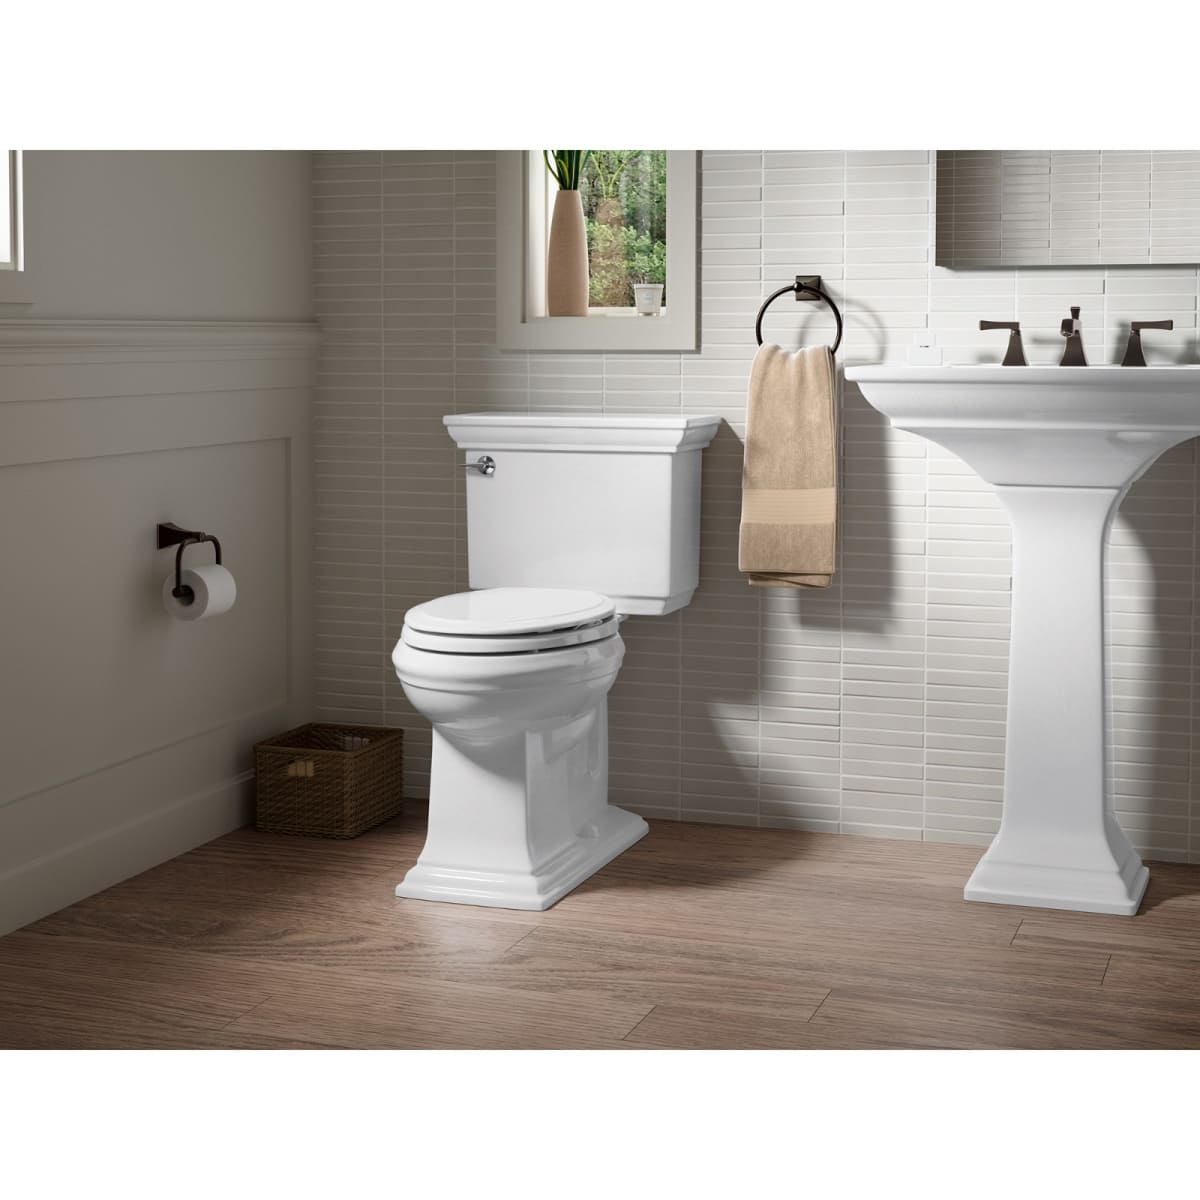 Outstanding Kohler K 4734 Pabps2019 Chair Design Images Pabps2019Com